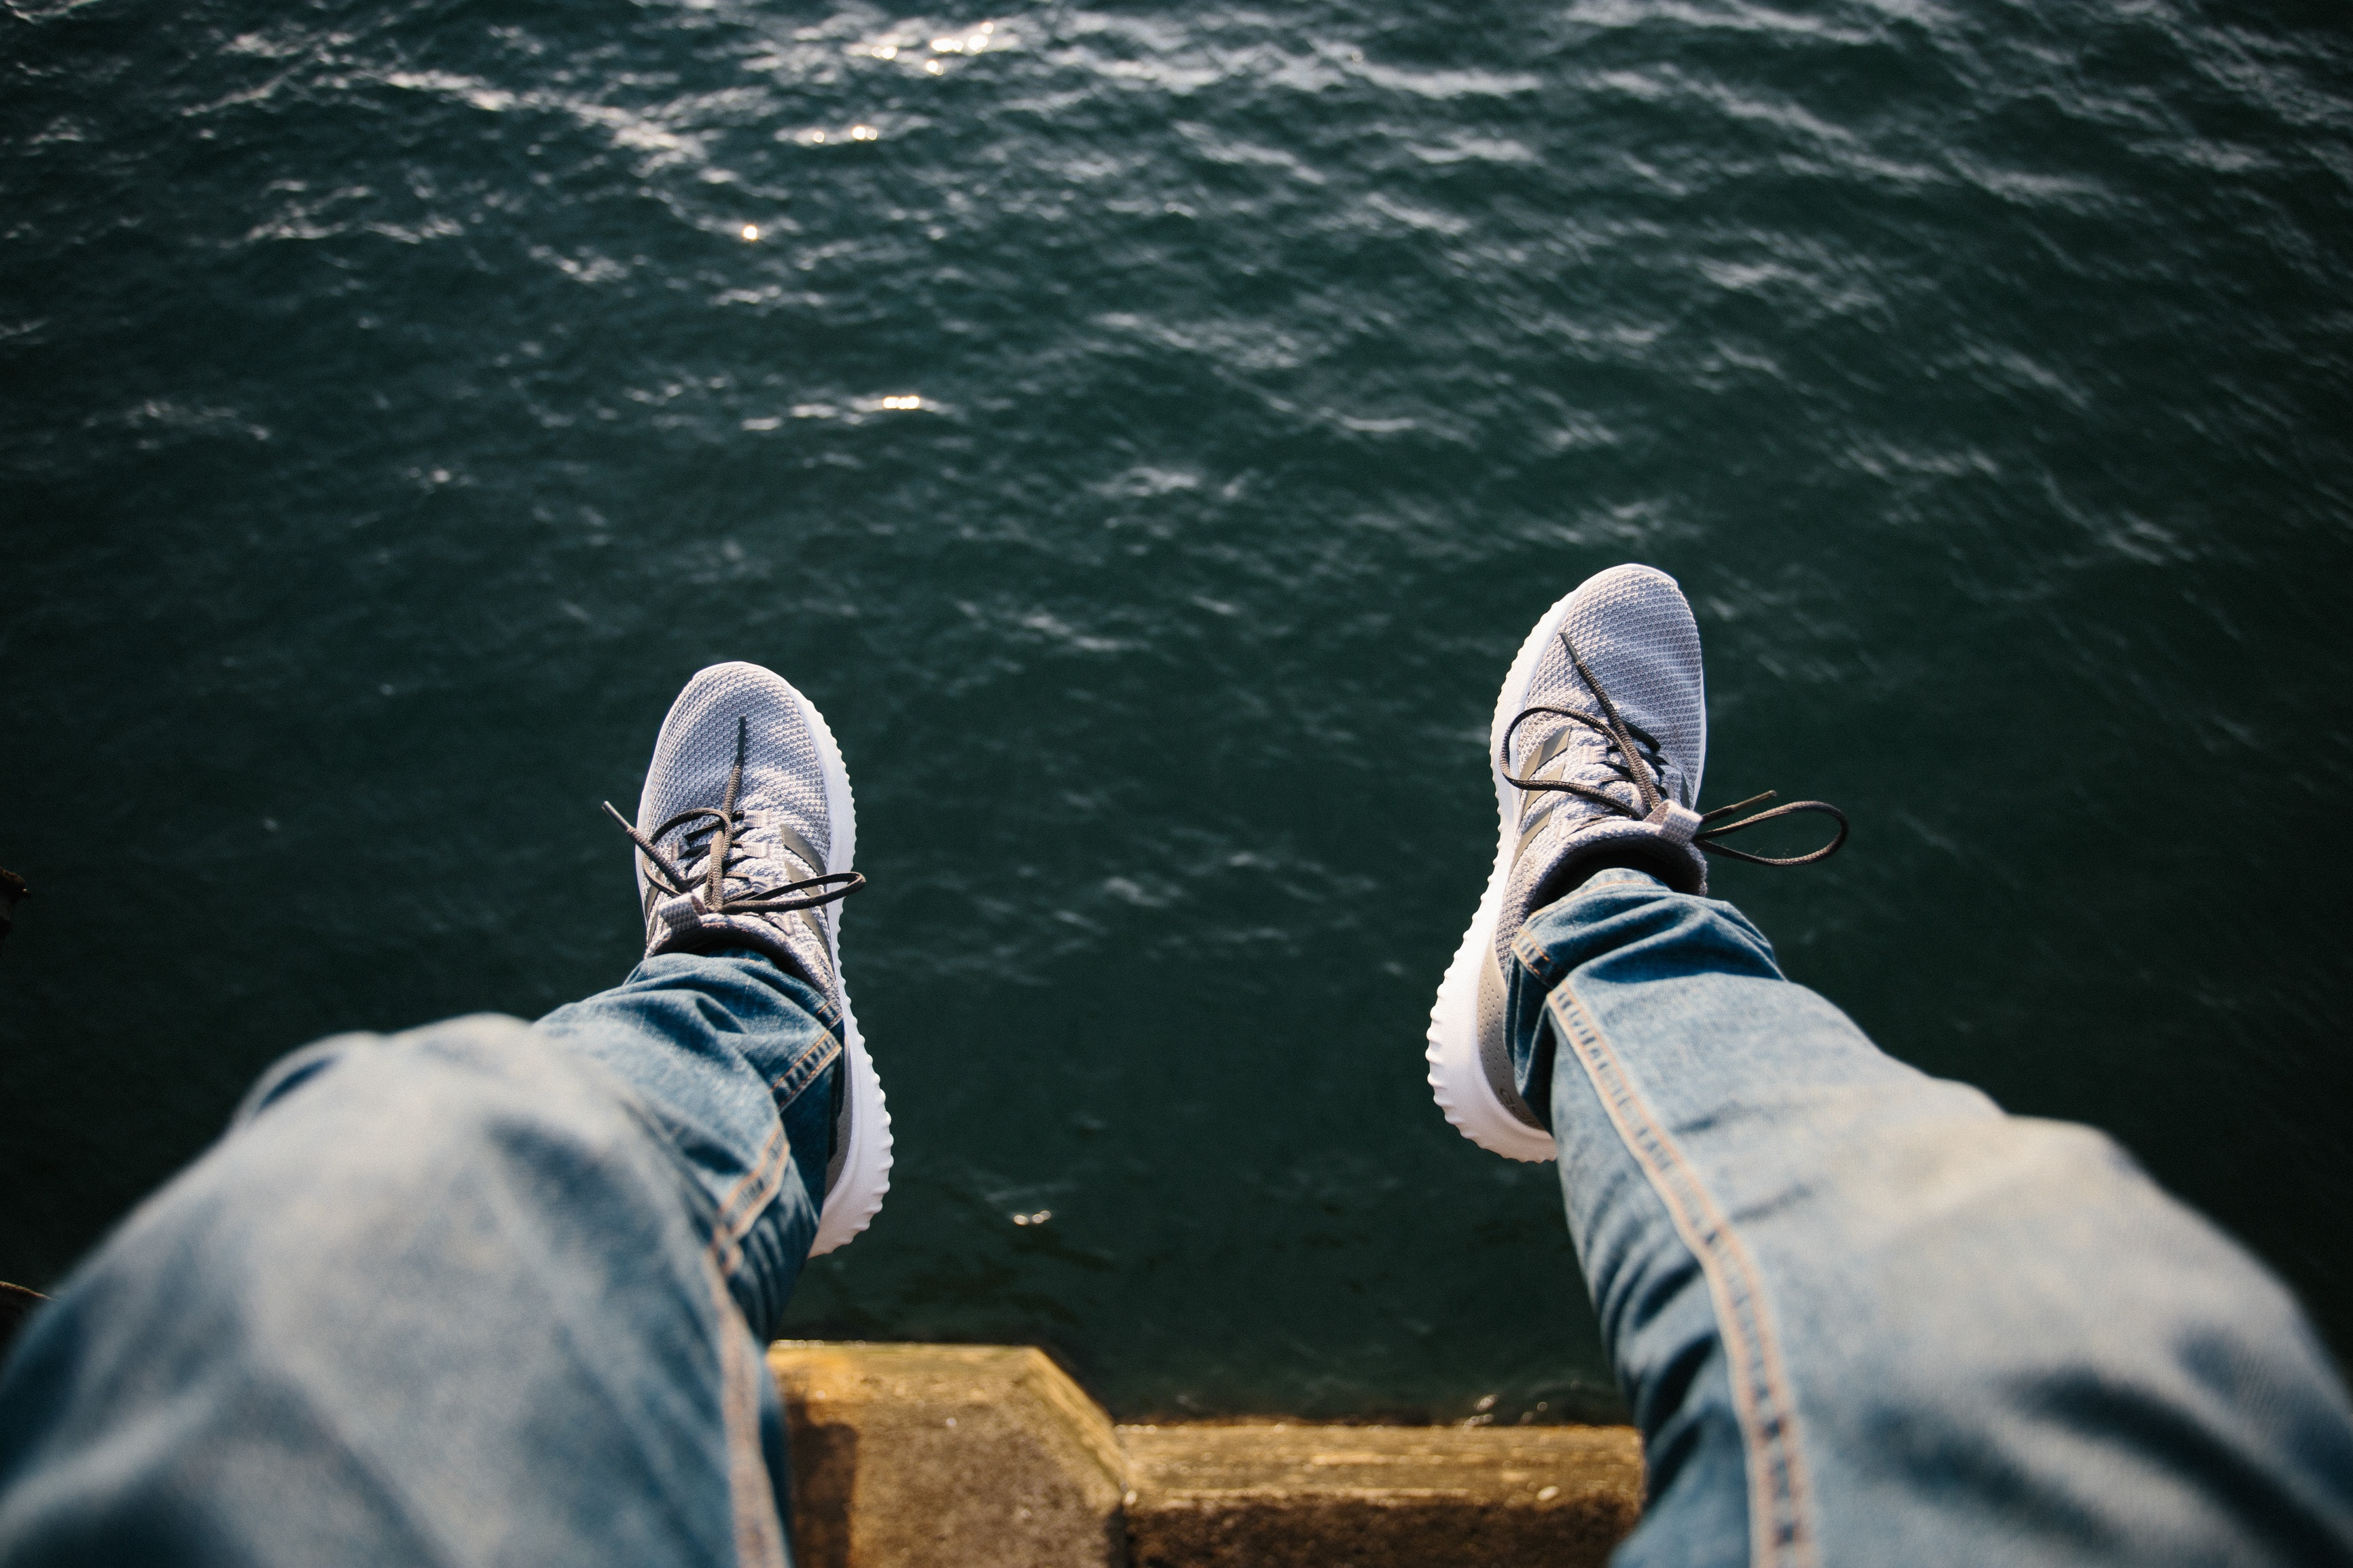 person sitting near body of water